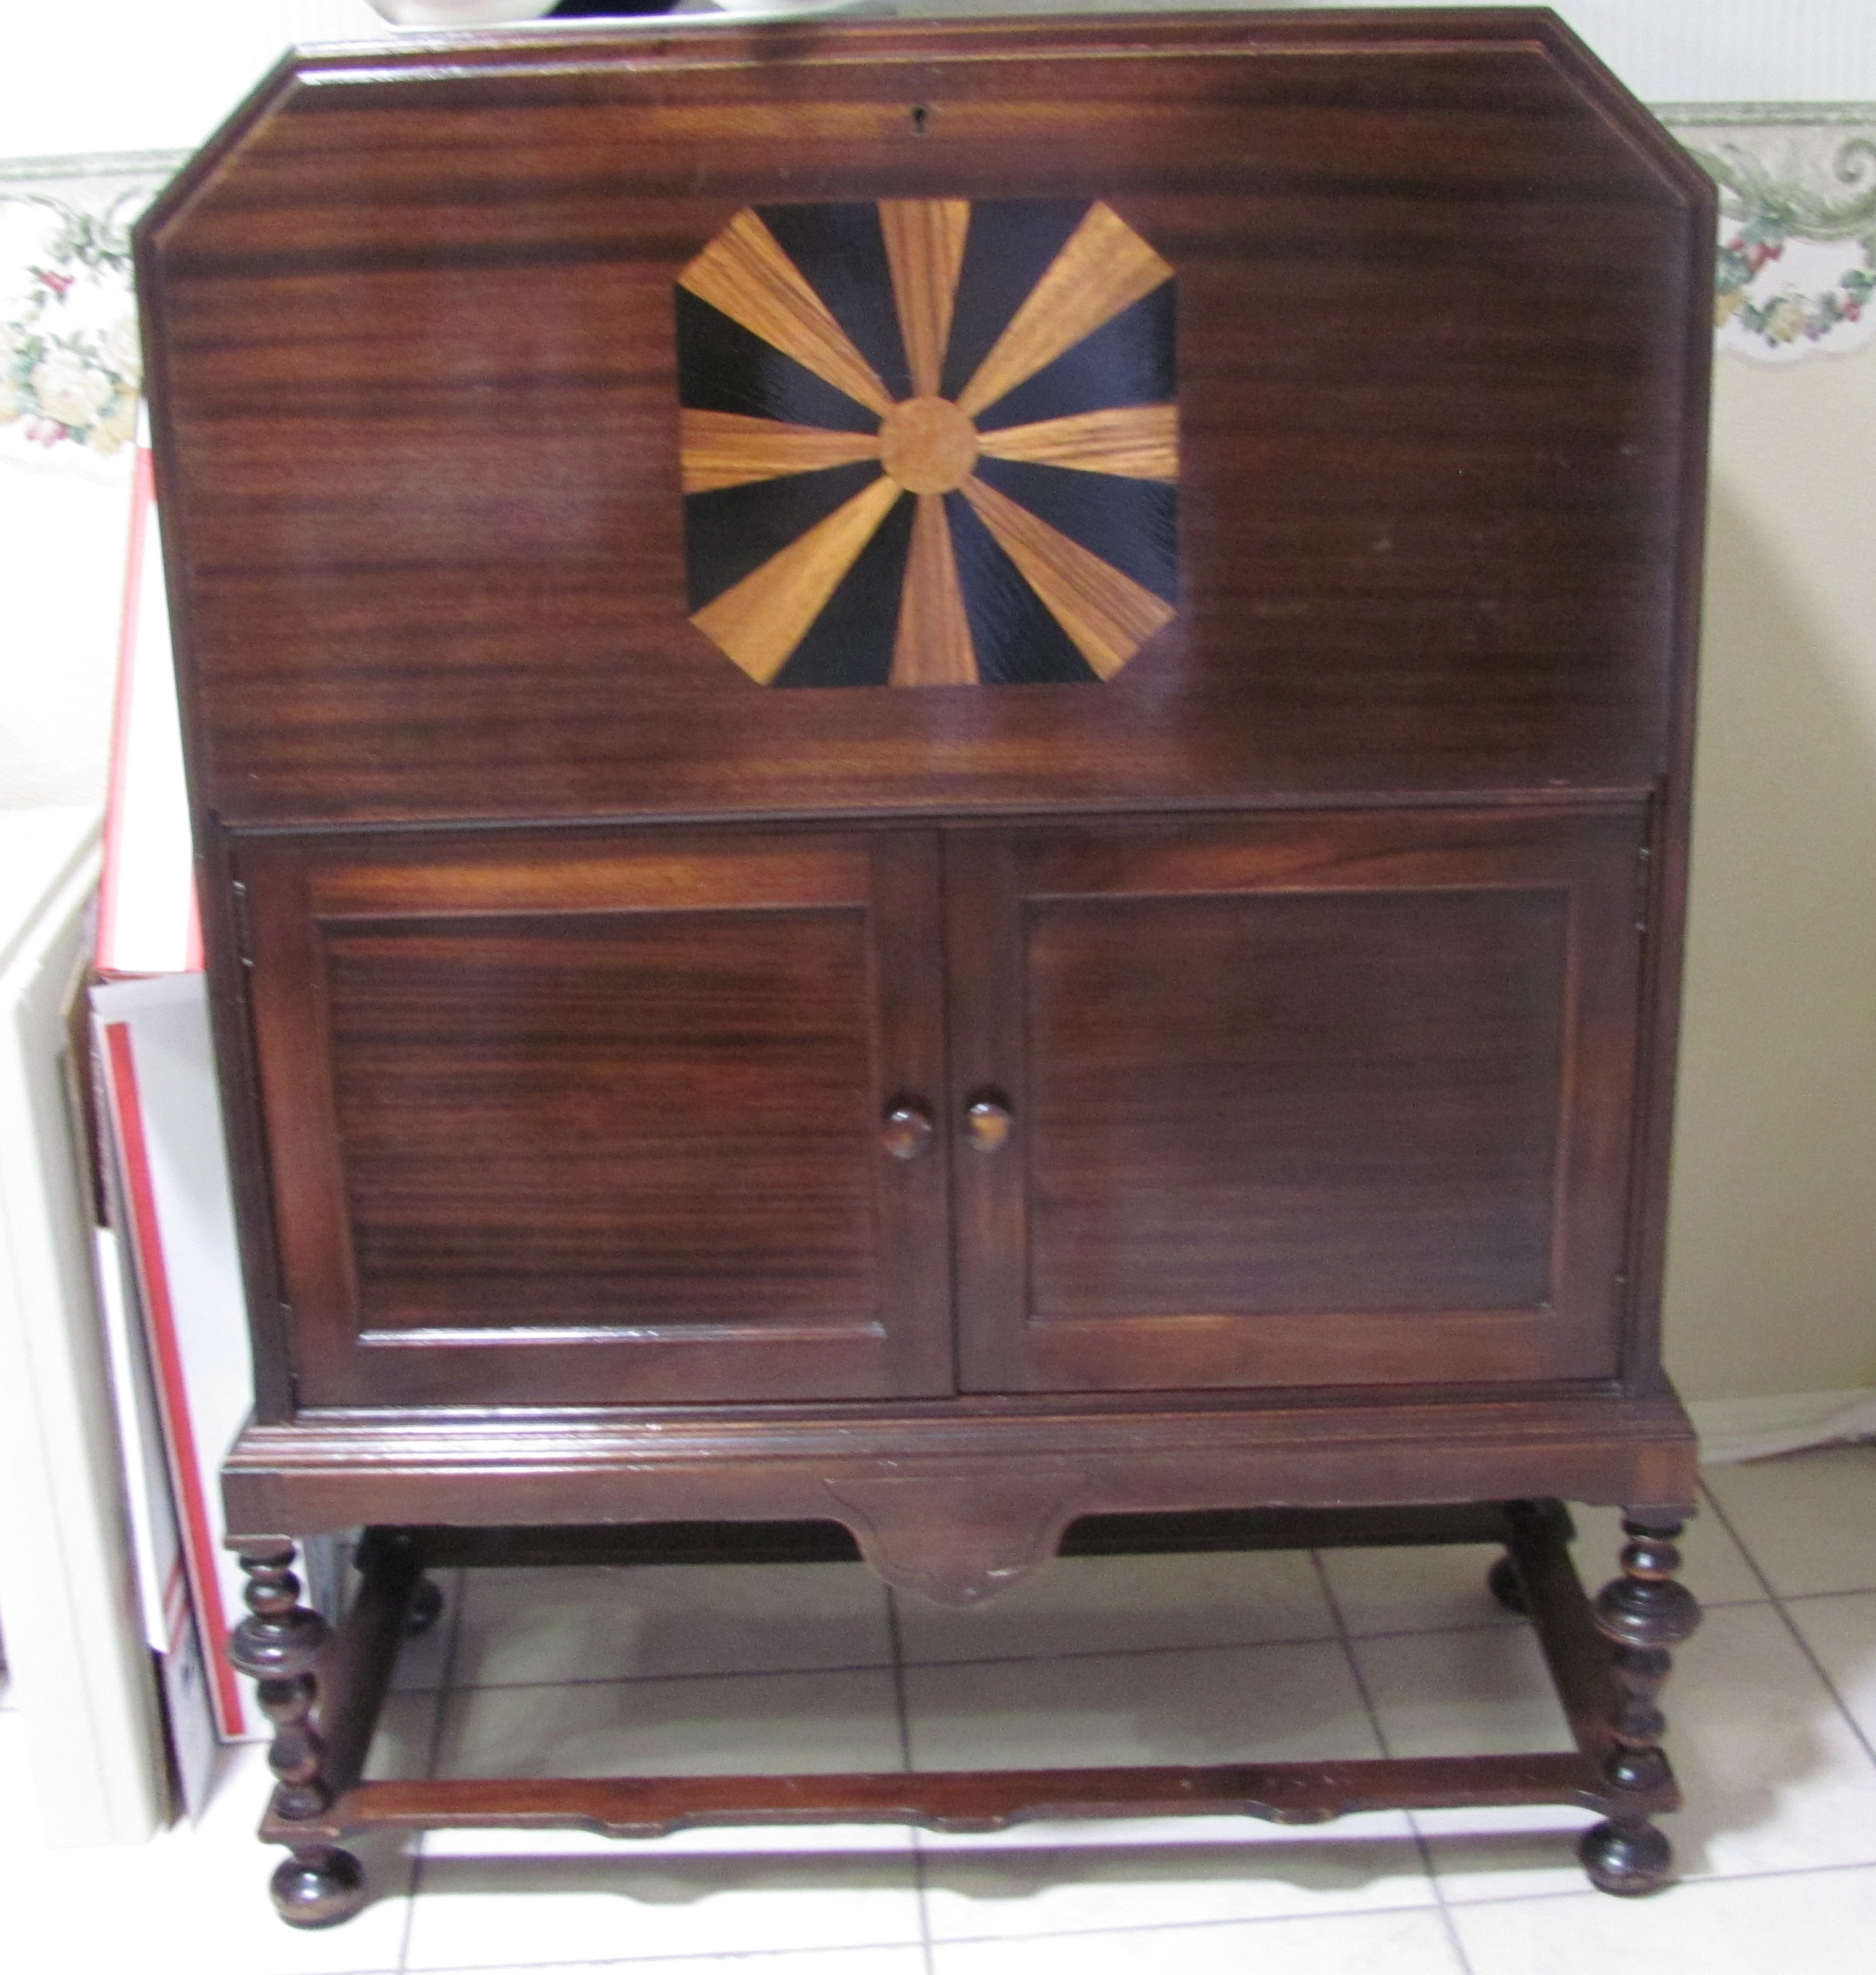 Antique Furniture Appraisal: Antique Tobey Furniture Inlaid Cabinet Antique Appraisal